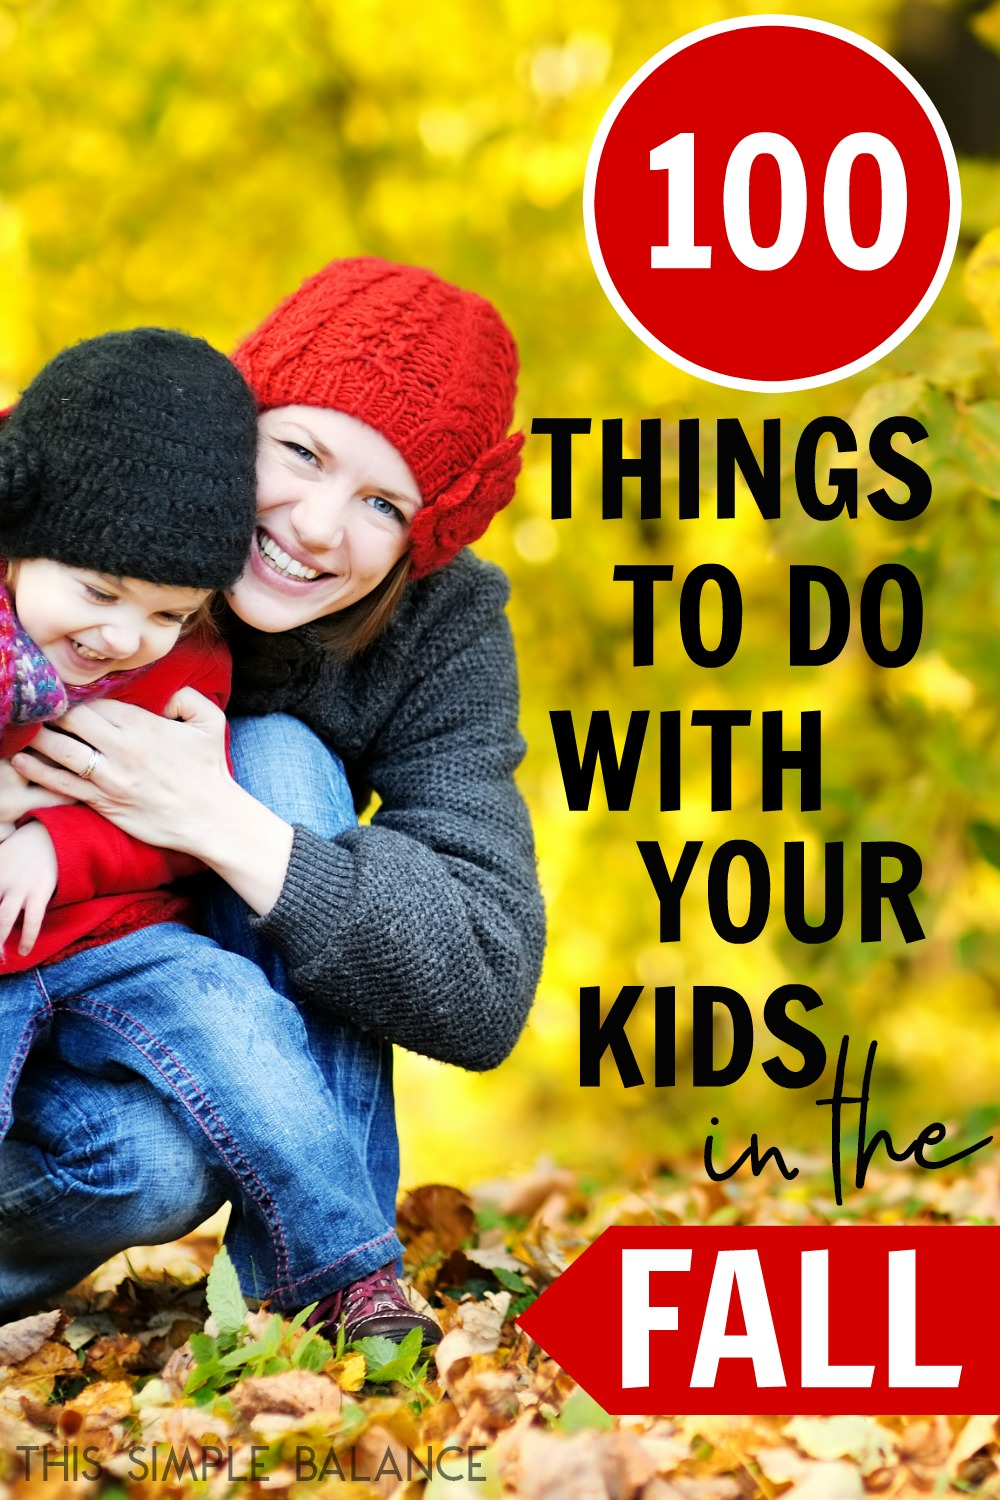 Looking for great fall activities for kids? Get 100 things to do with kids this fall - fall books to read, educational activities to do, fall recipes to bake, fall crafts to make.